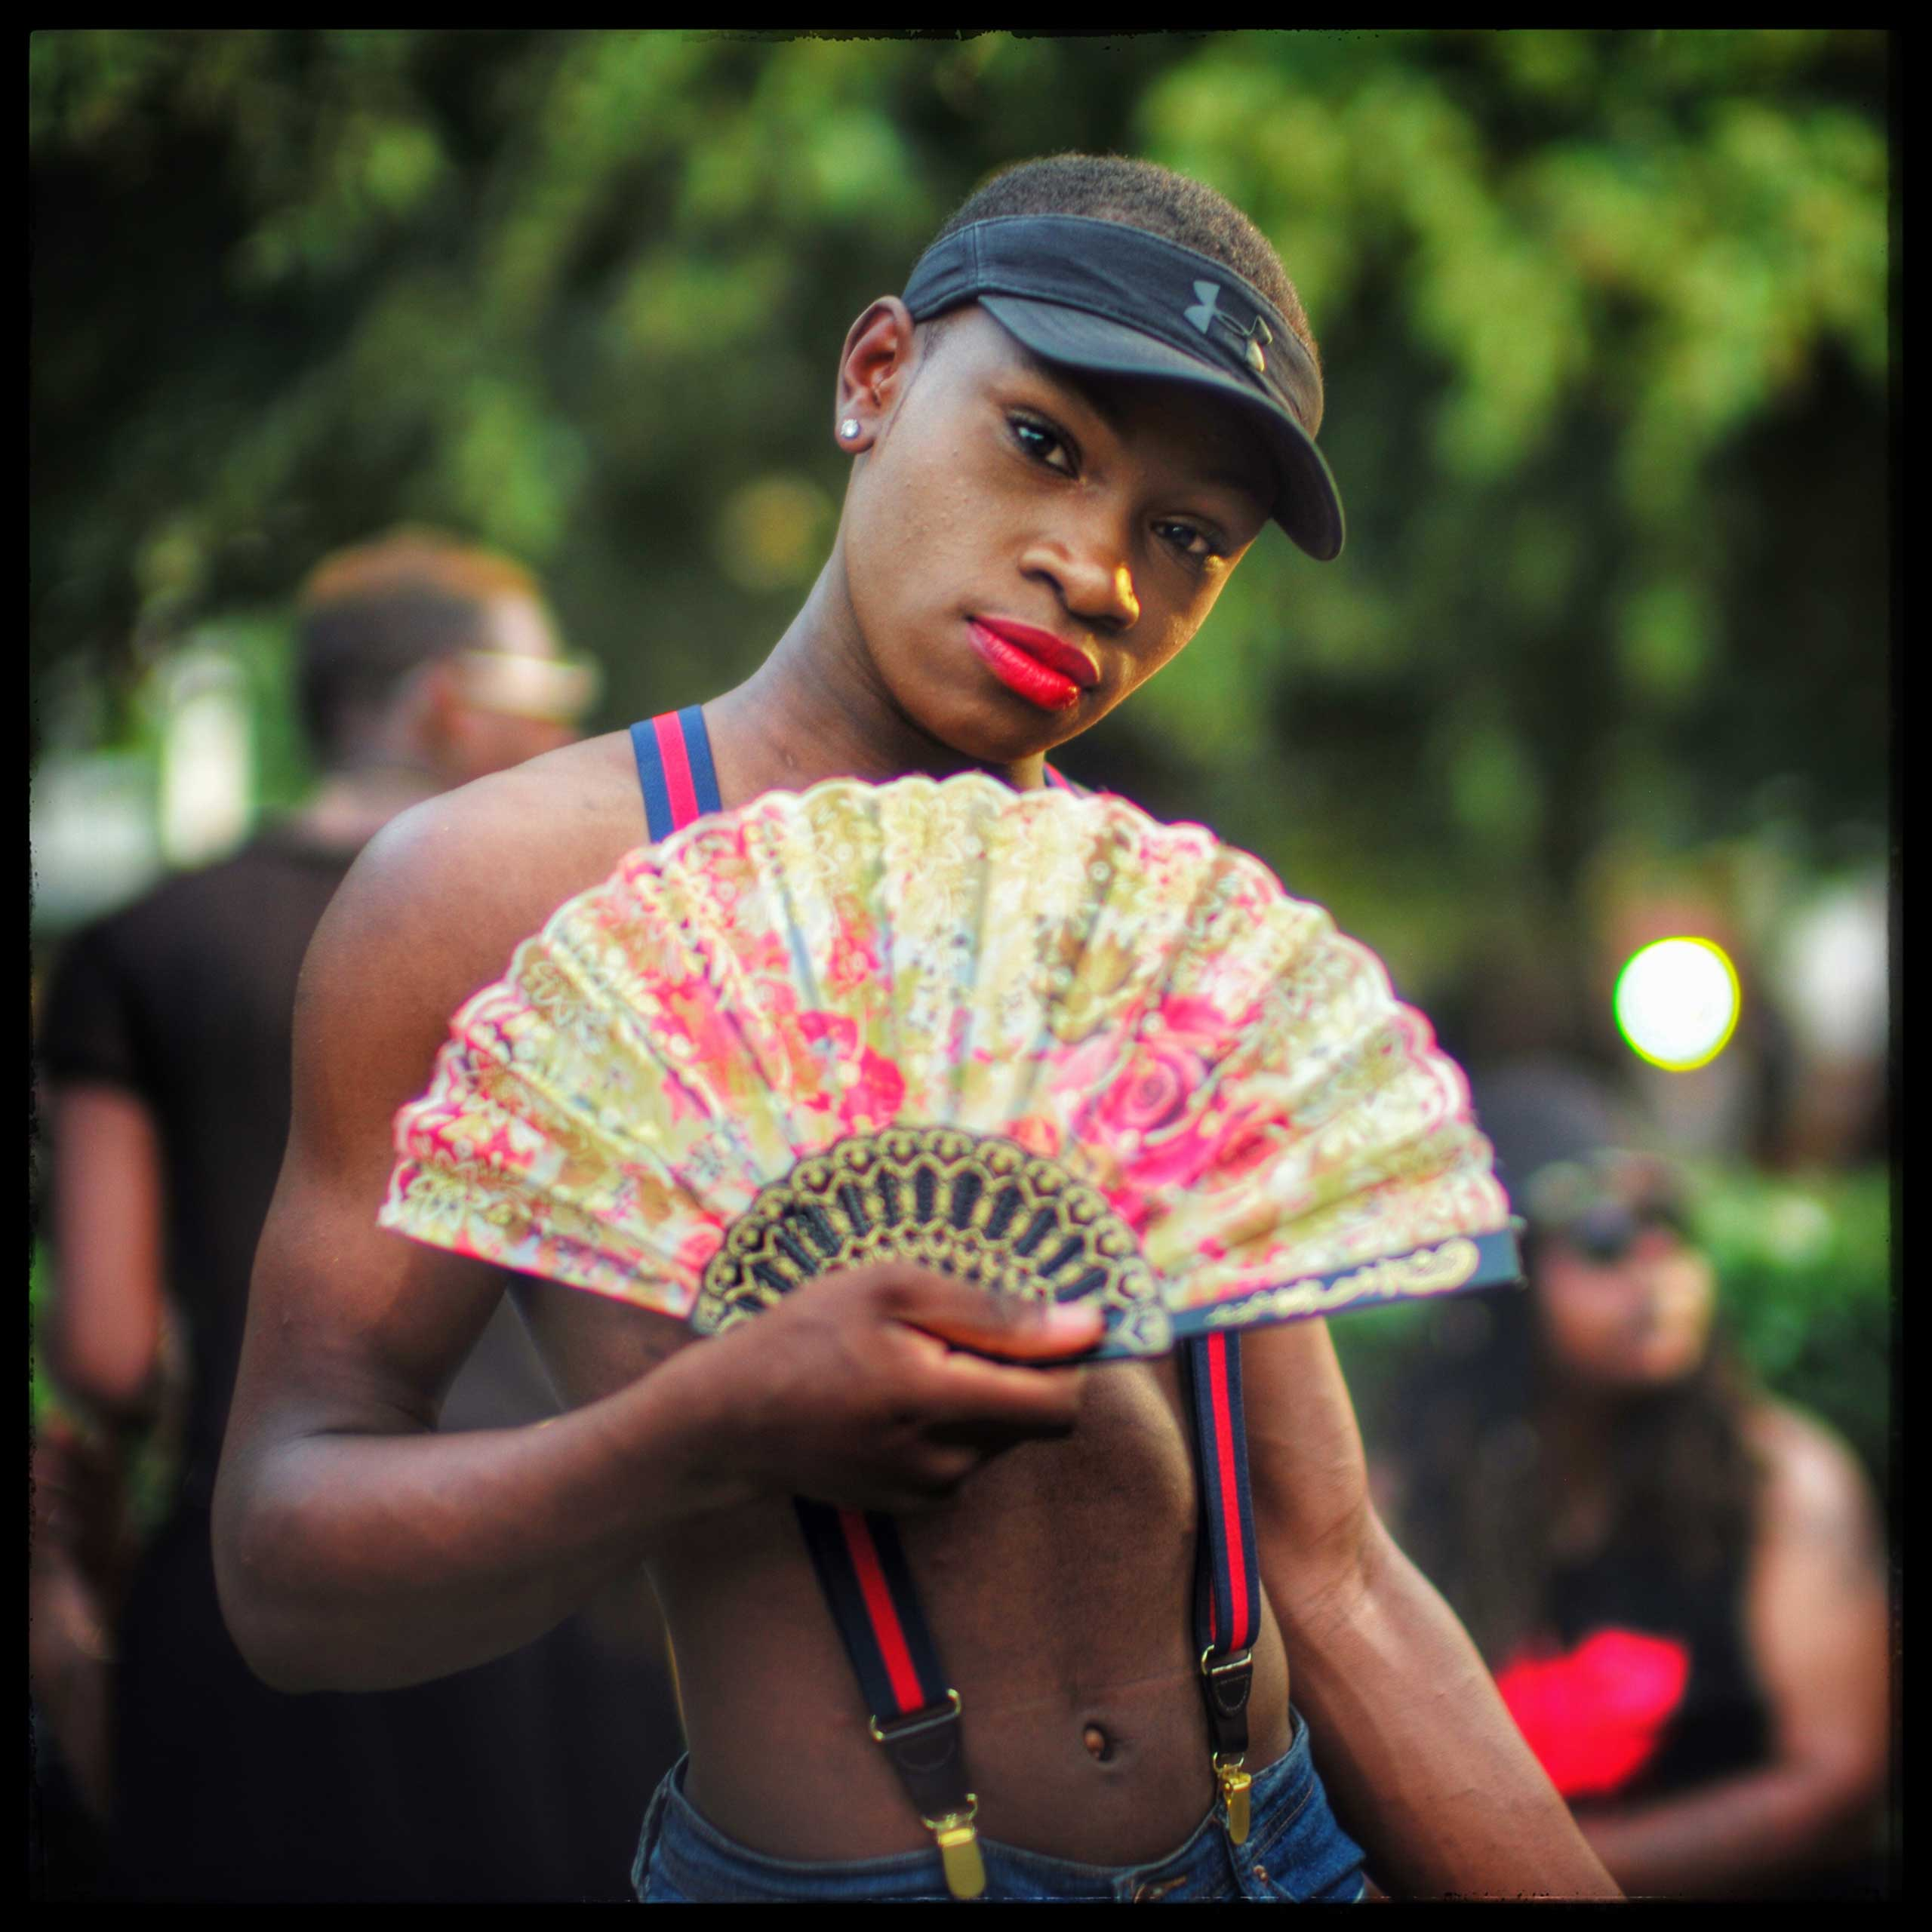 A D.C. Pride goer poses for a photograph before inviting me to come to Miami to photograph Miami Pride. Days later, a lone gunman opened fire inside The Pulse gay club in Orlando.